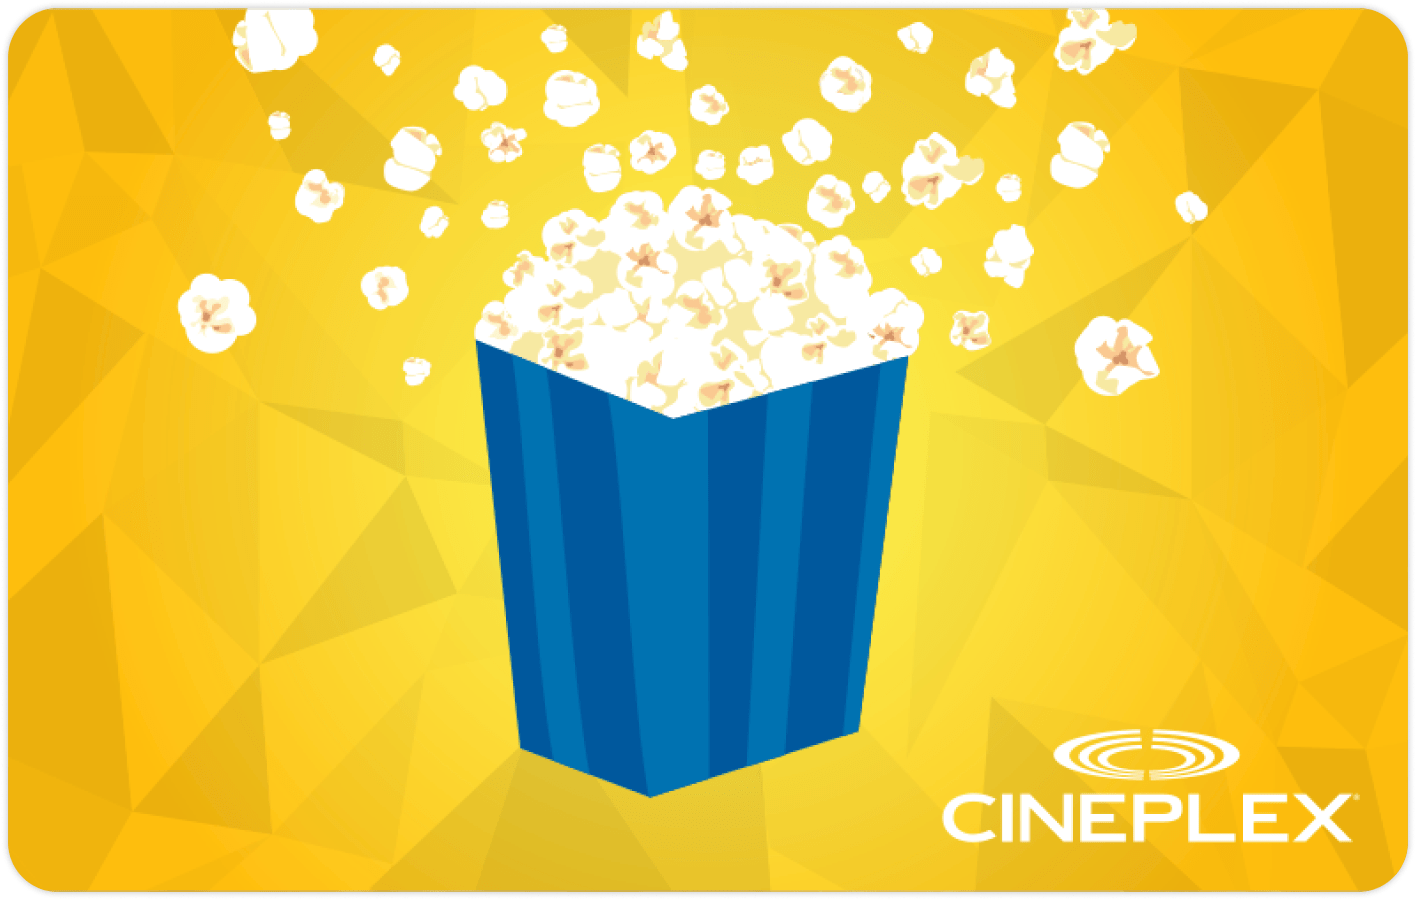 Cineplex gift card